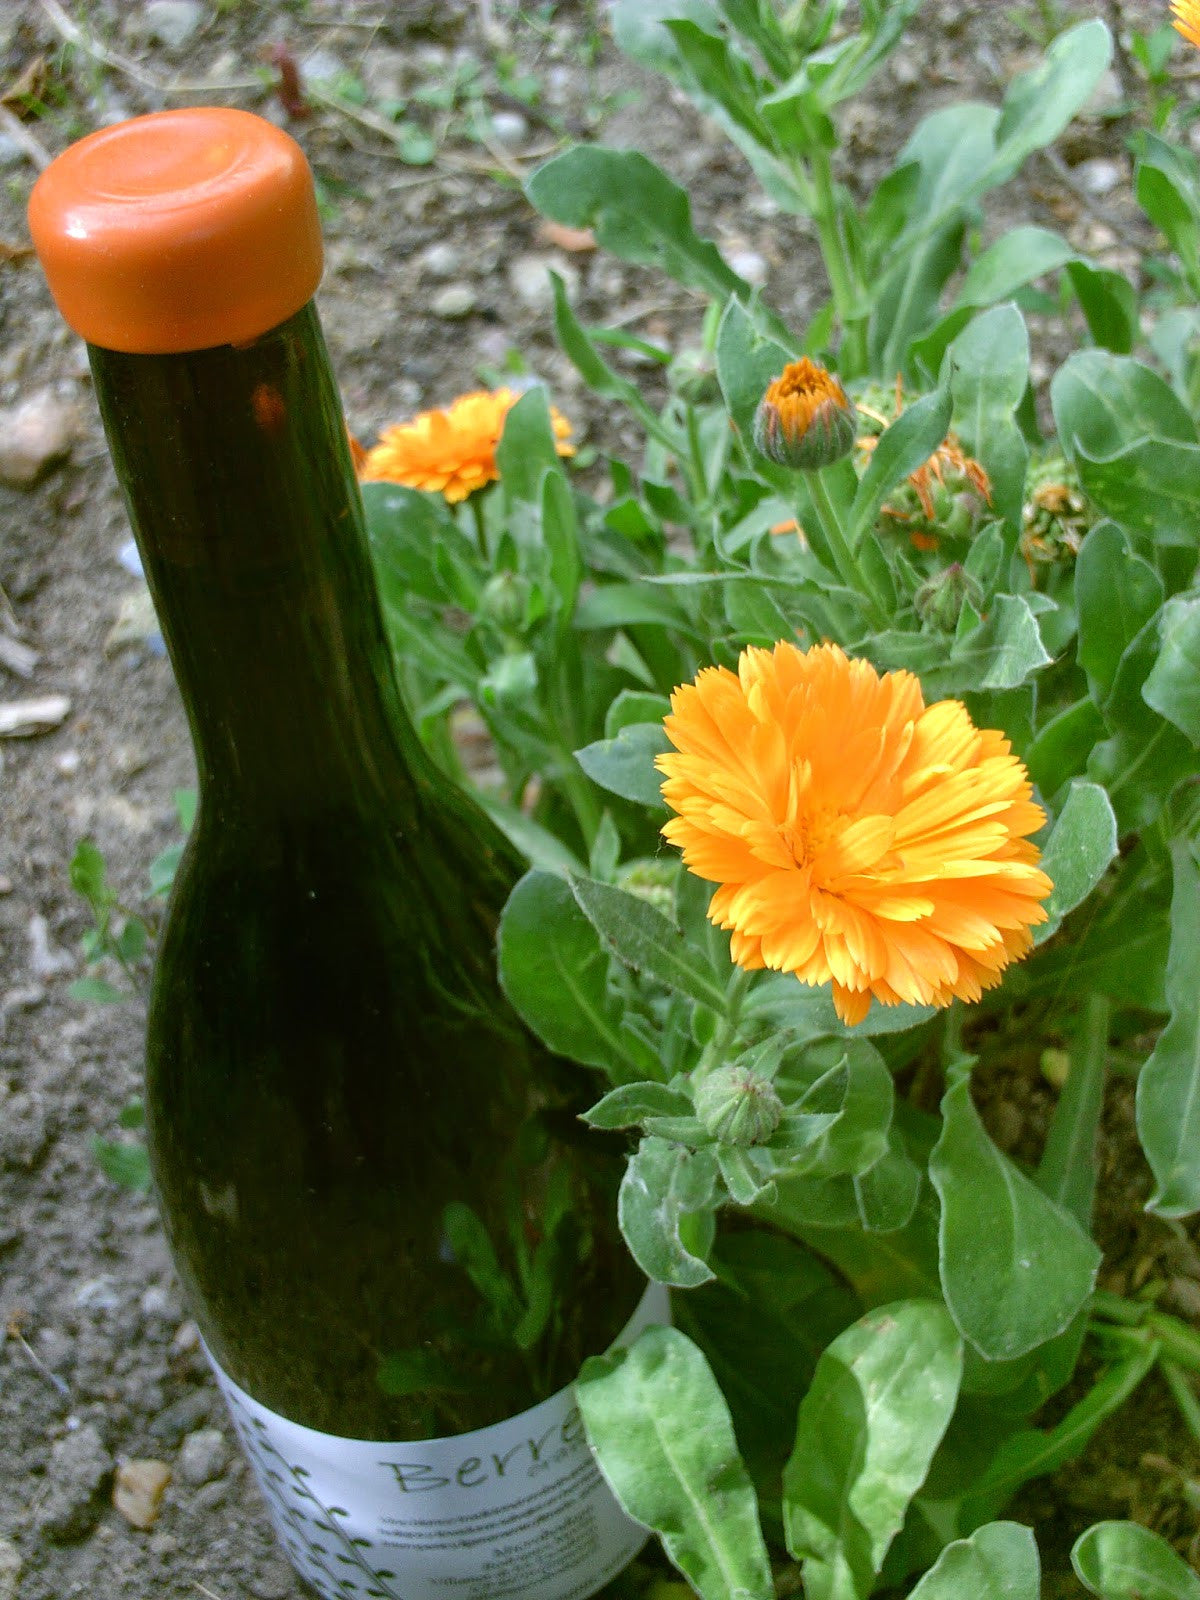 Berretes Orange Wine (Zamora)